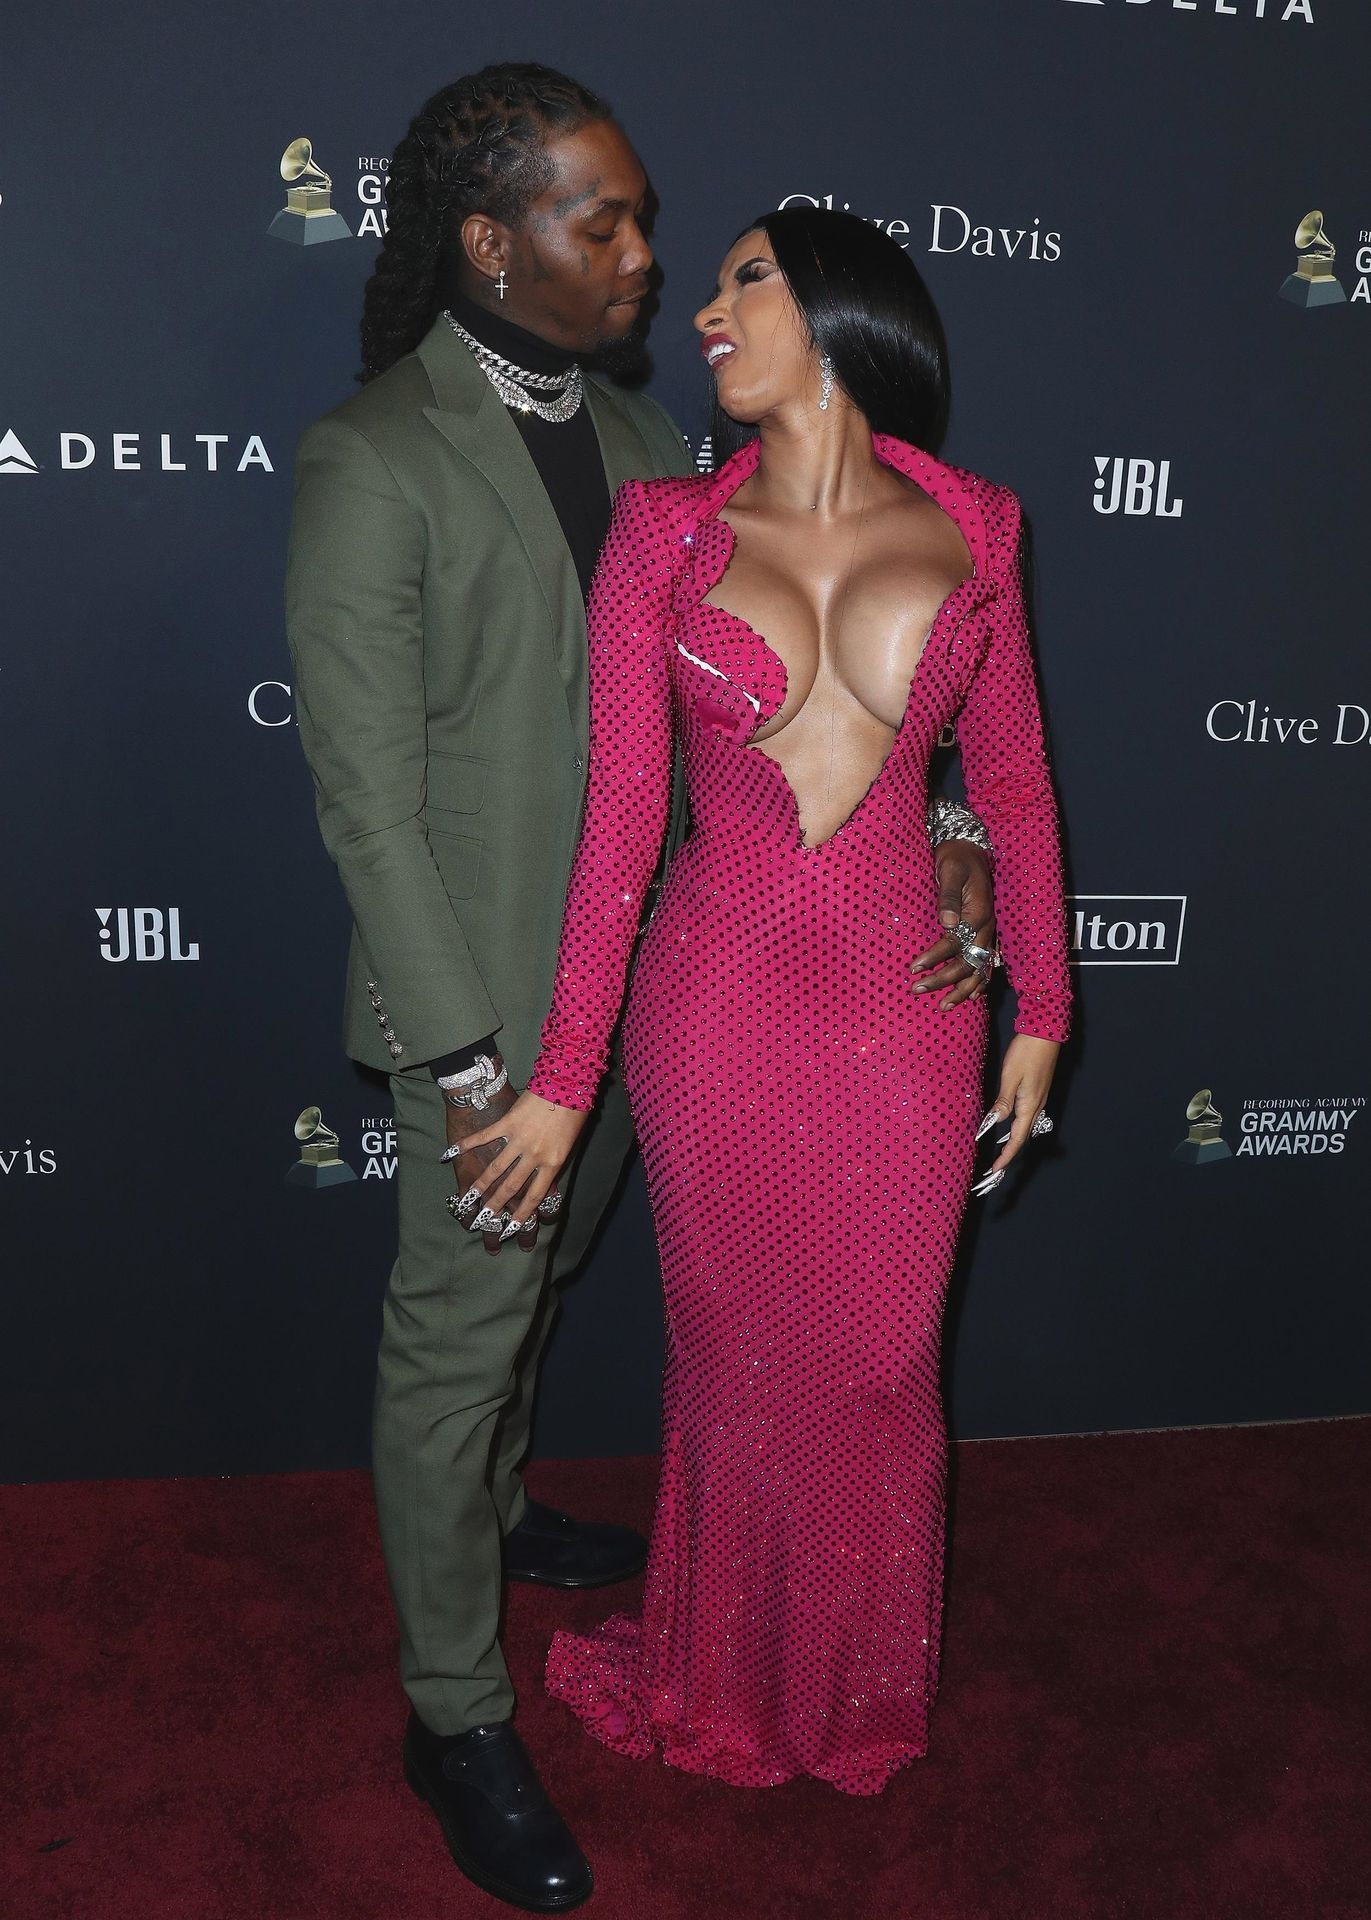 Offset Covers Cardi B's Boobs To Avoid Wardrobe Malfunction At Clive Davis Pre Grammy Party 0042